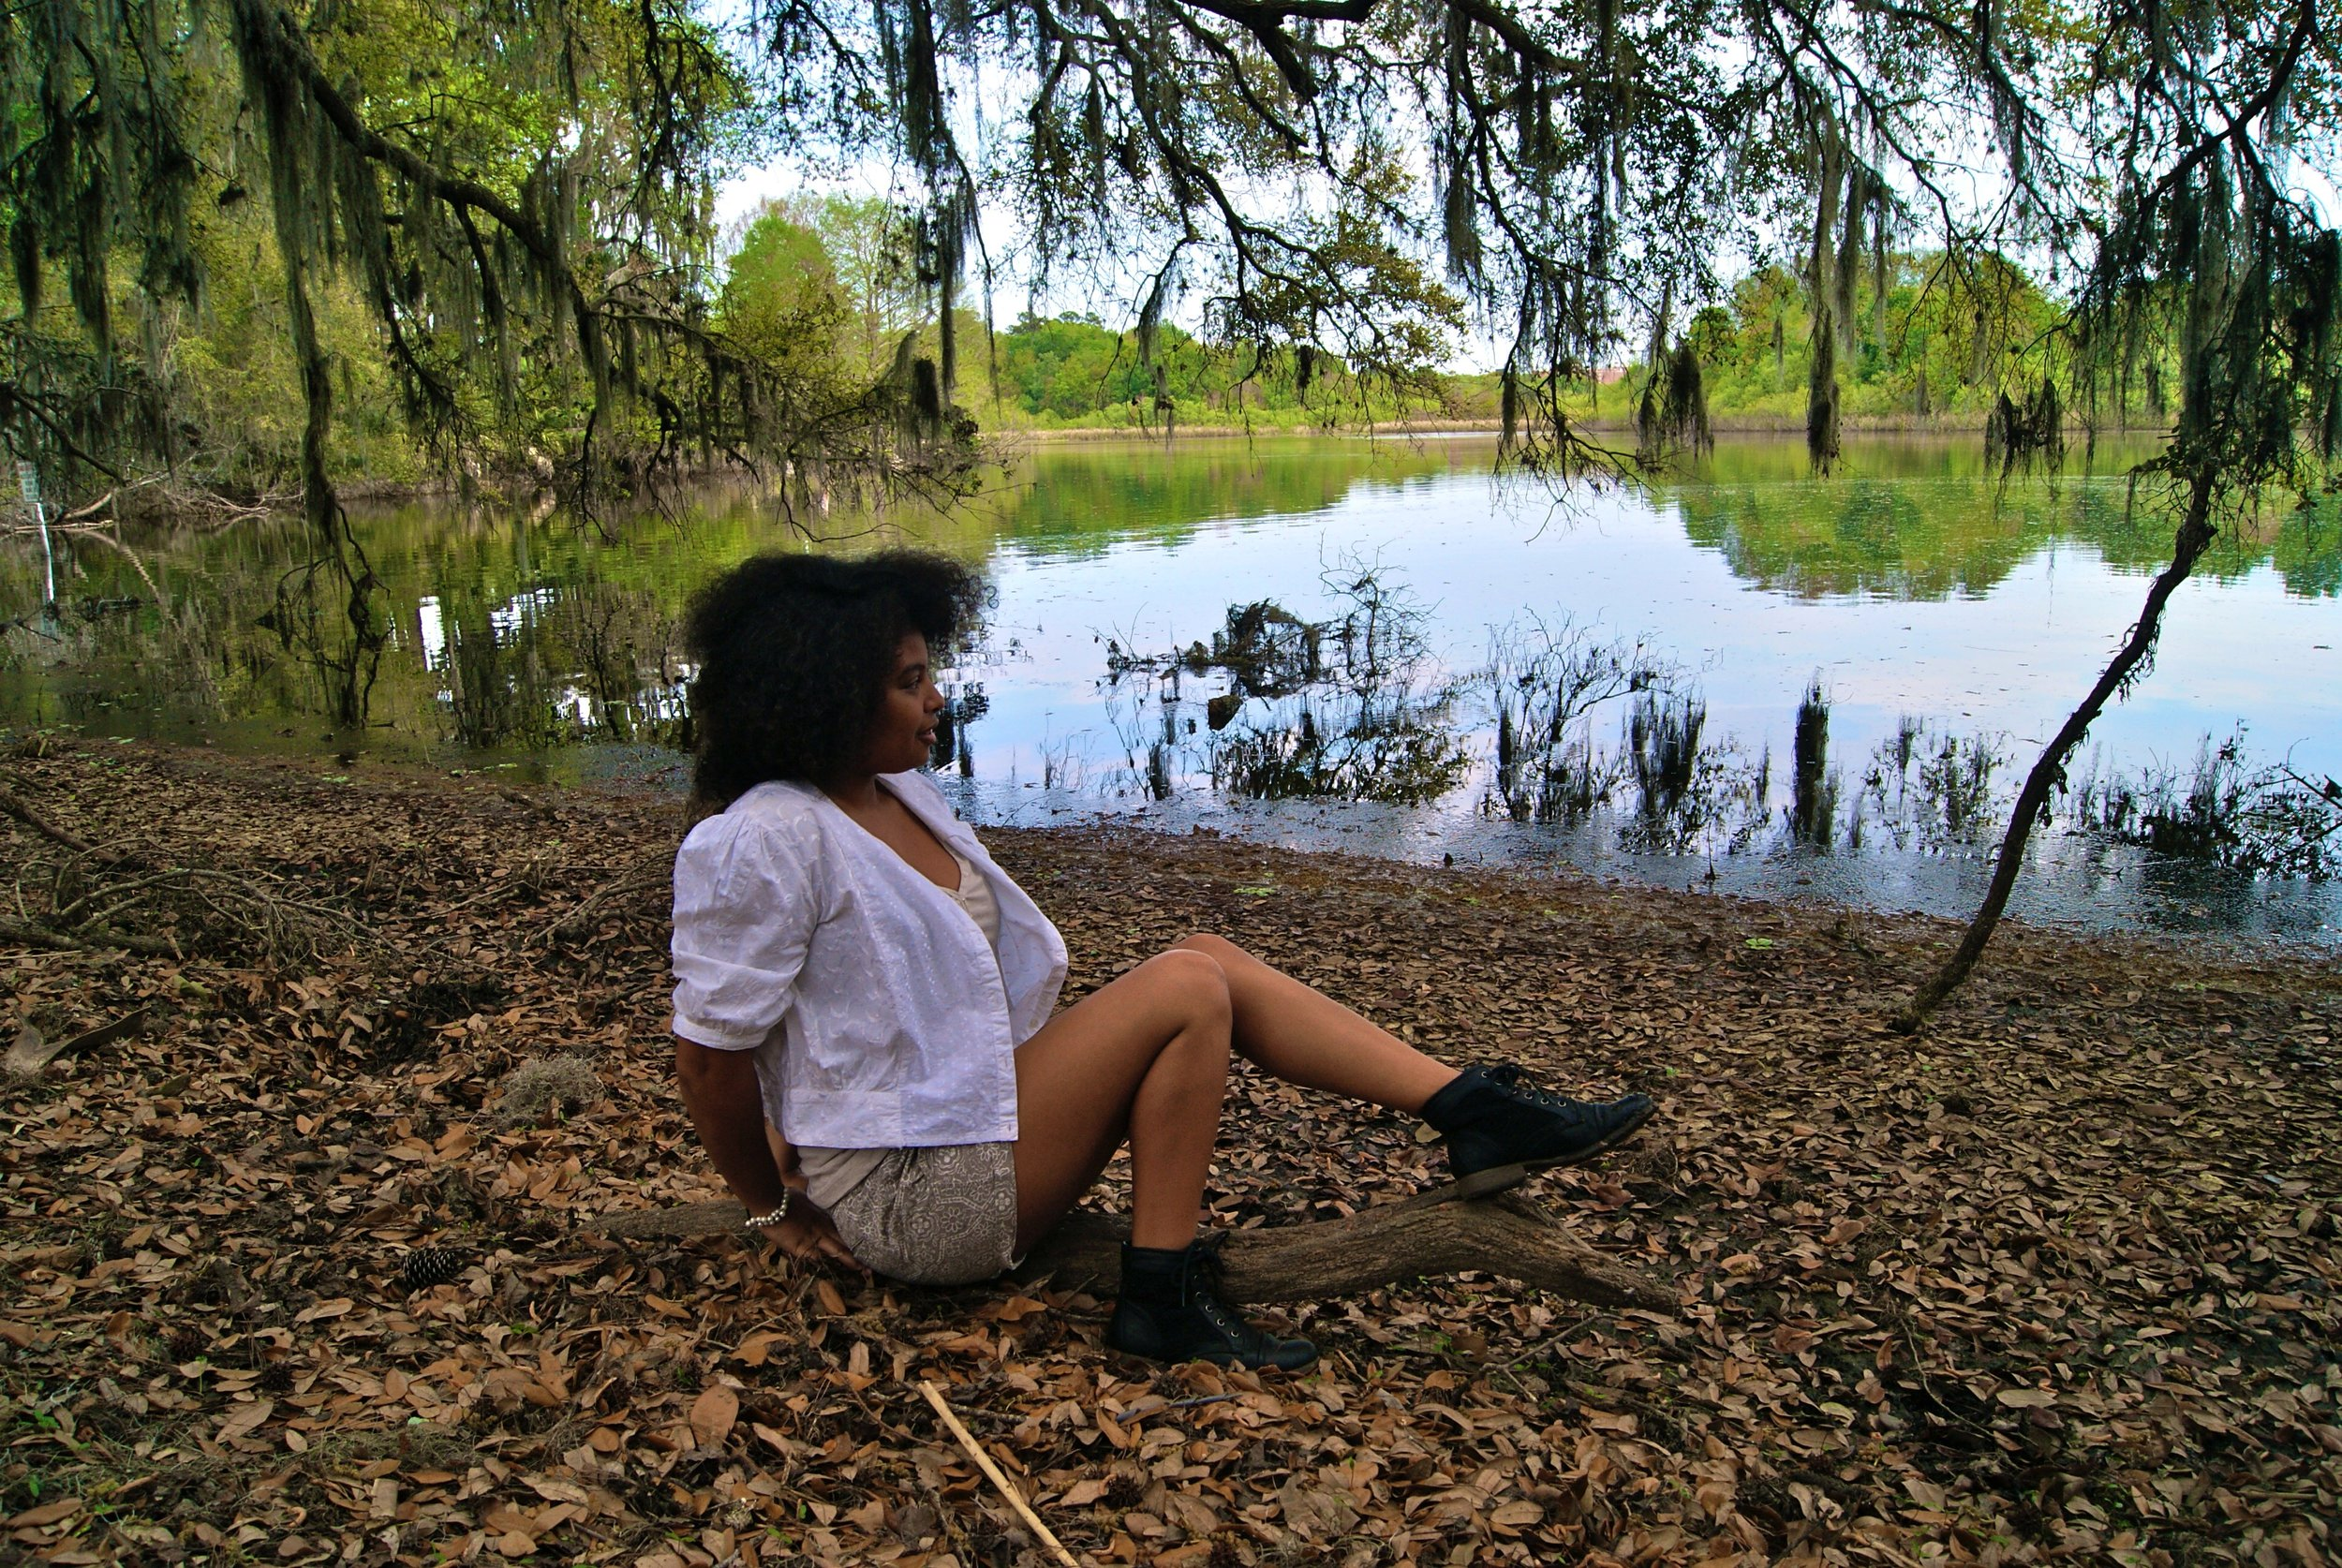 I was sitting on a bark of wood in Lake Alice, which was located at the University of Florida.